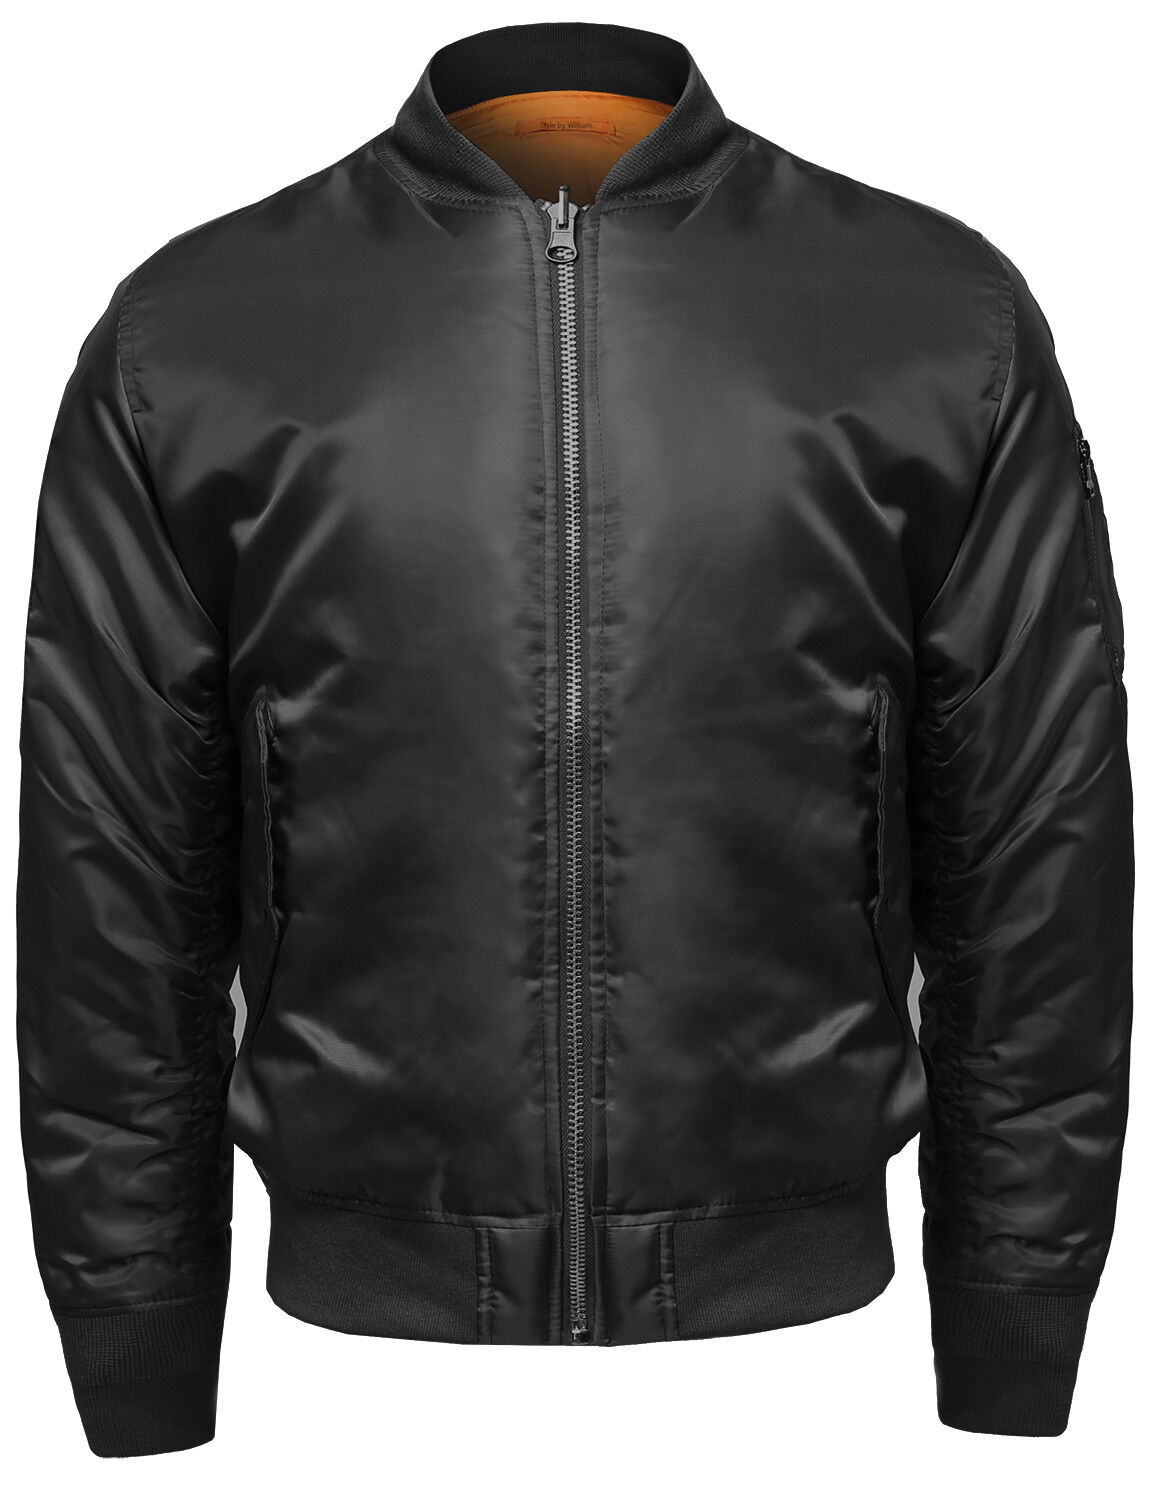 FashionOutfit Men's Classic Basic Air Force Flight Zipper De